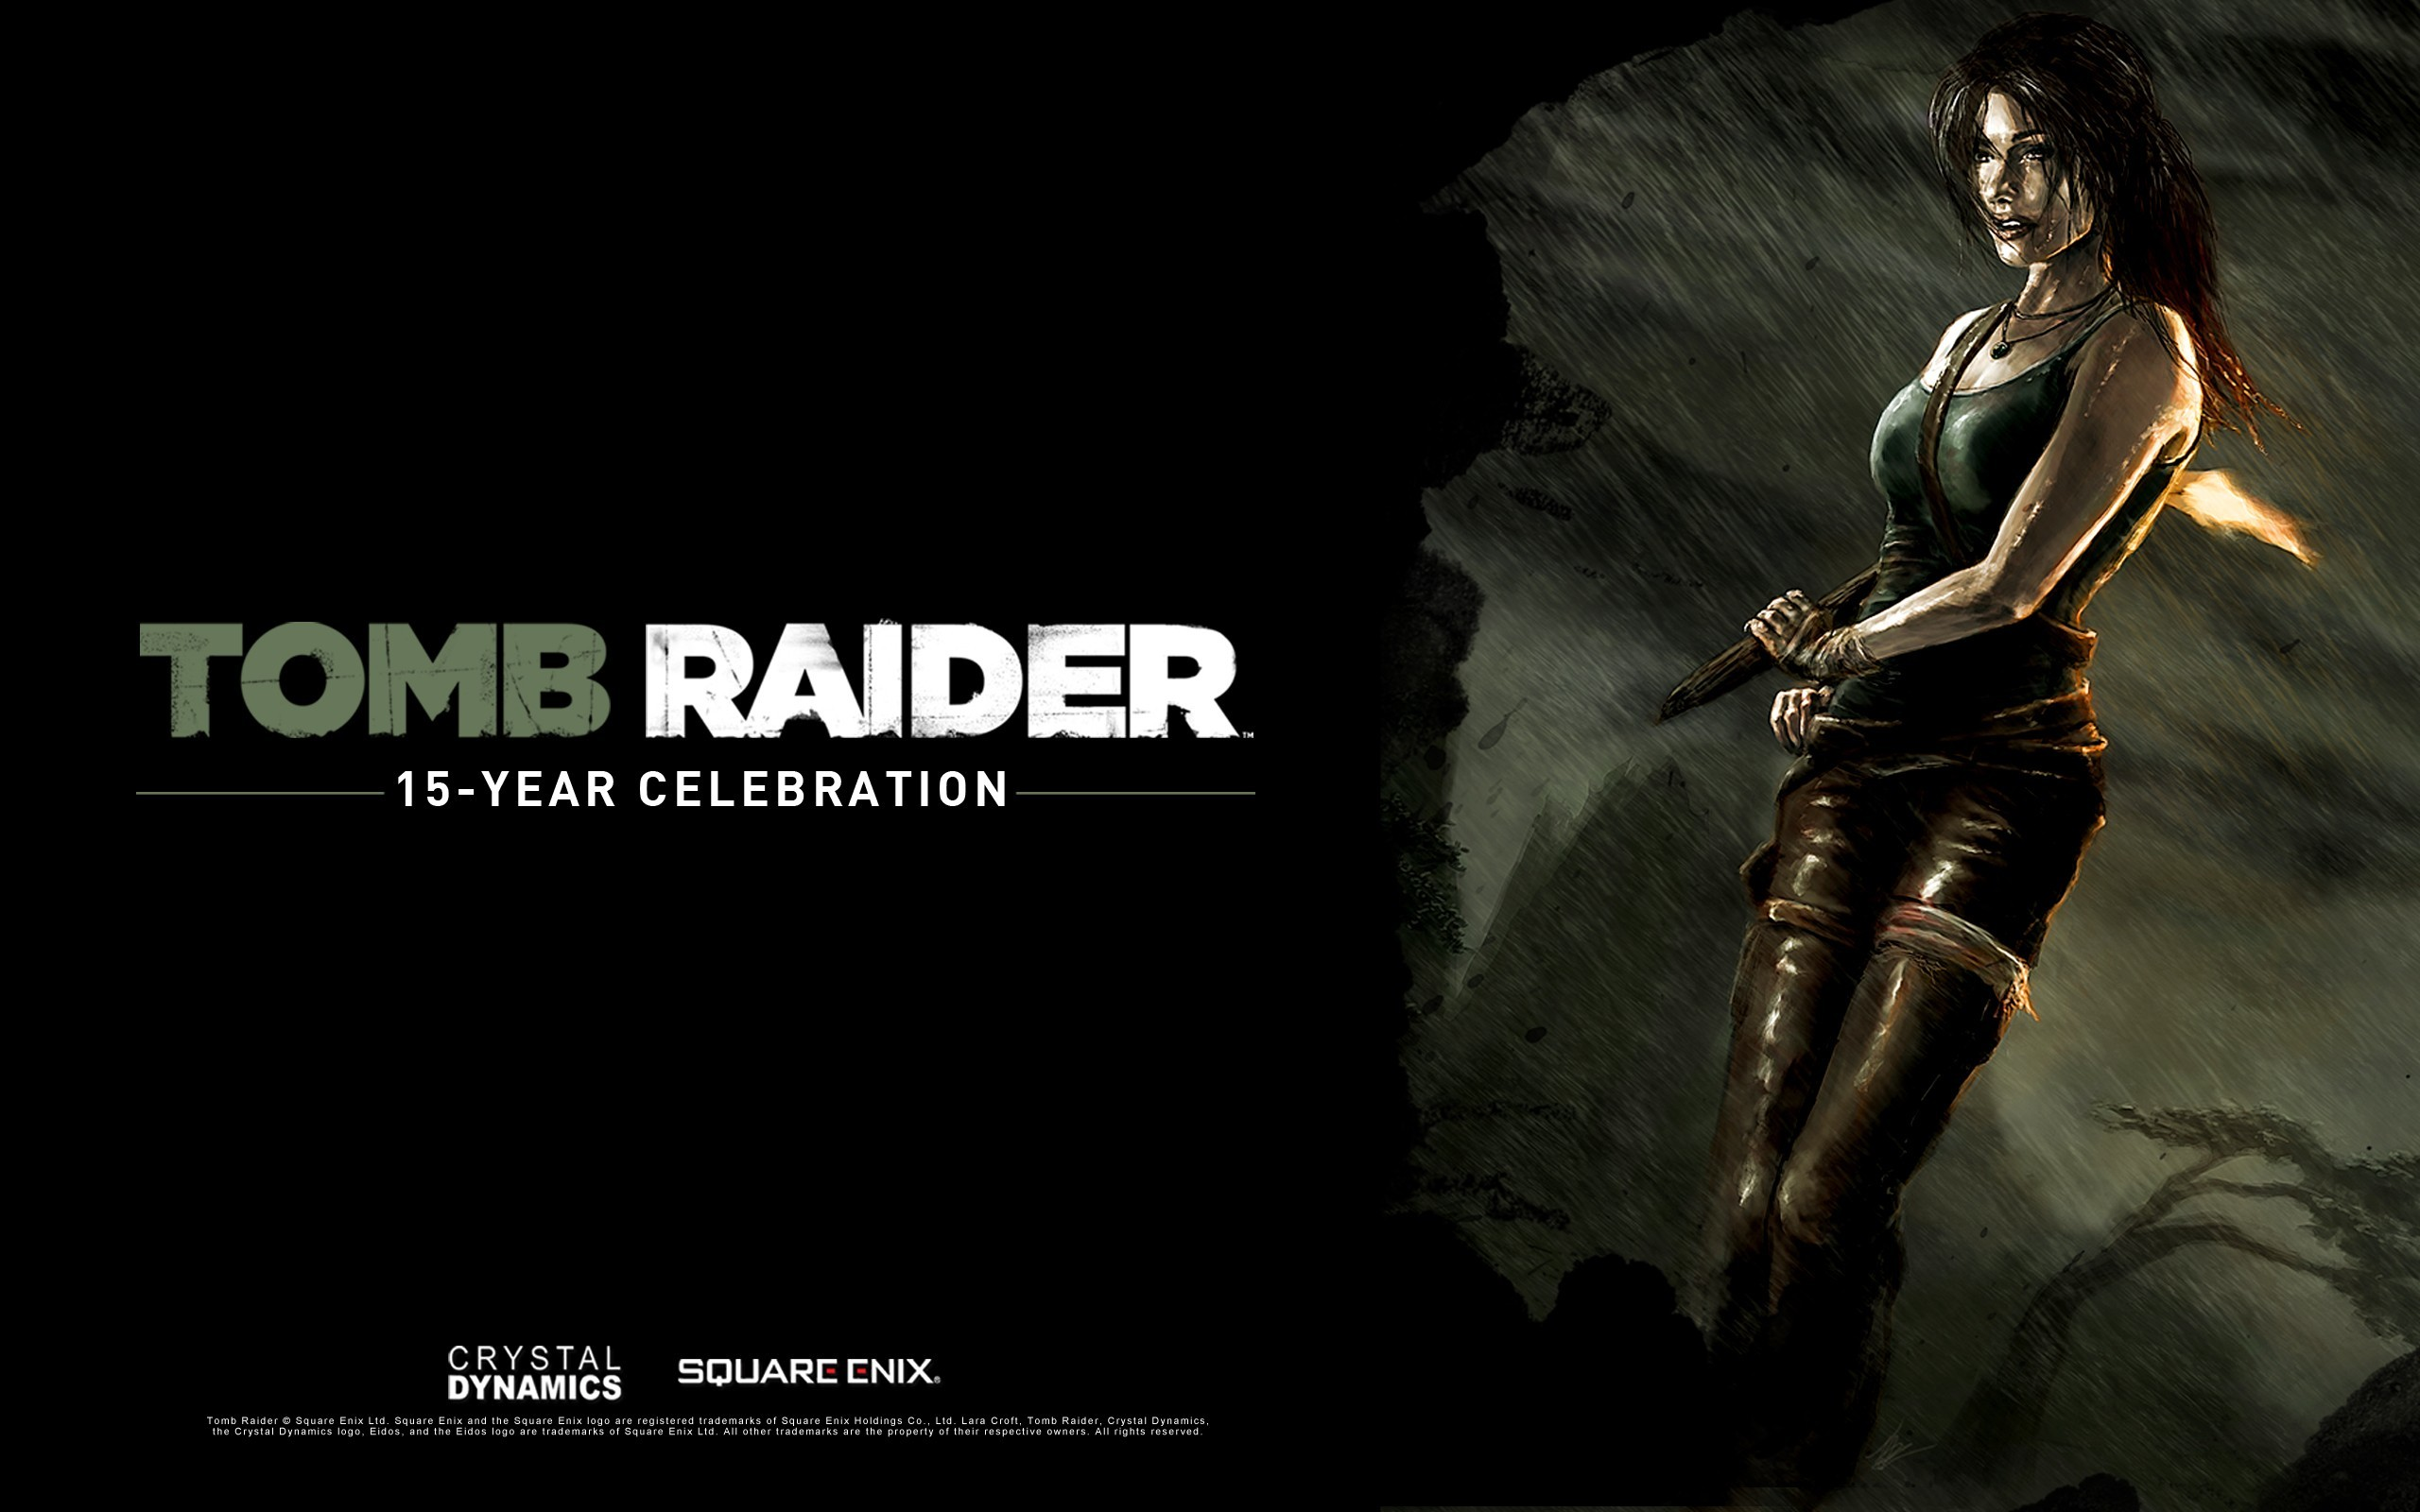 tomb raider lara croft video games HD Wallpaper